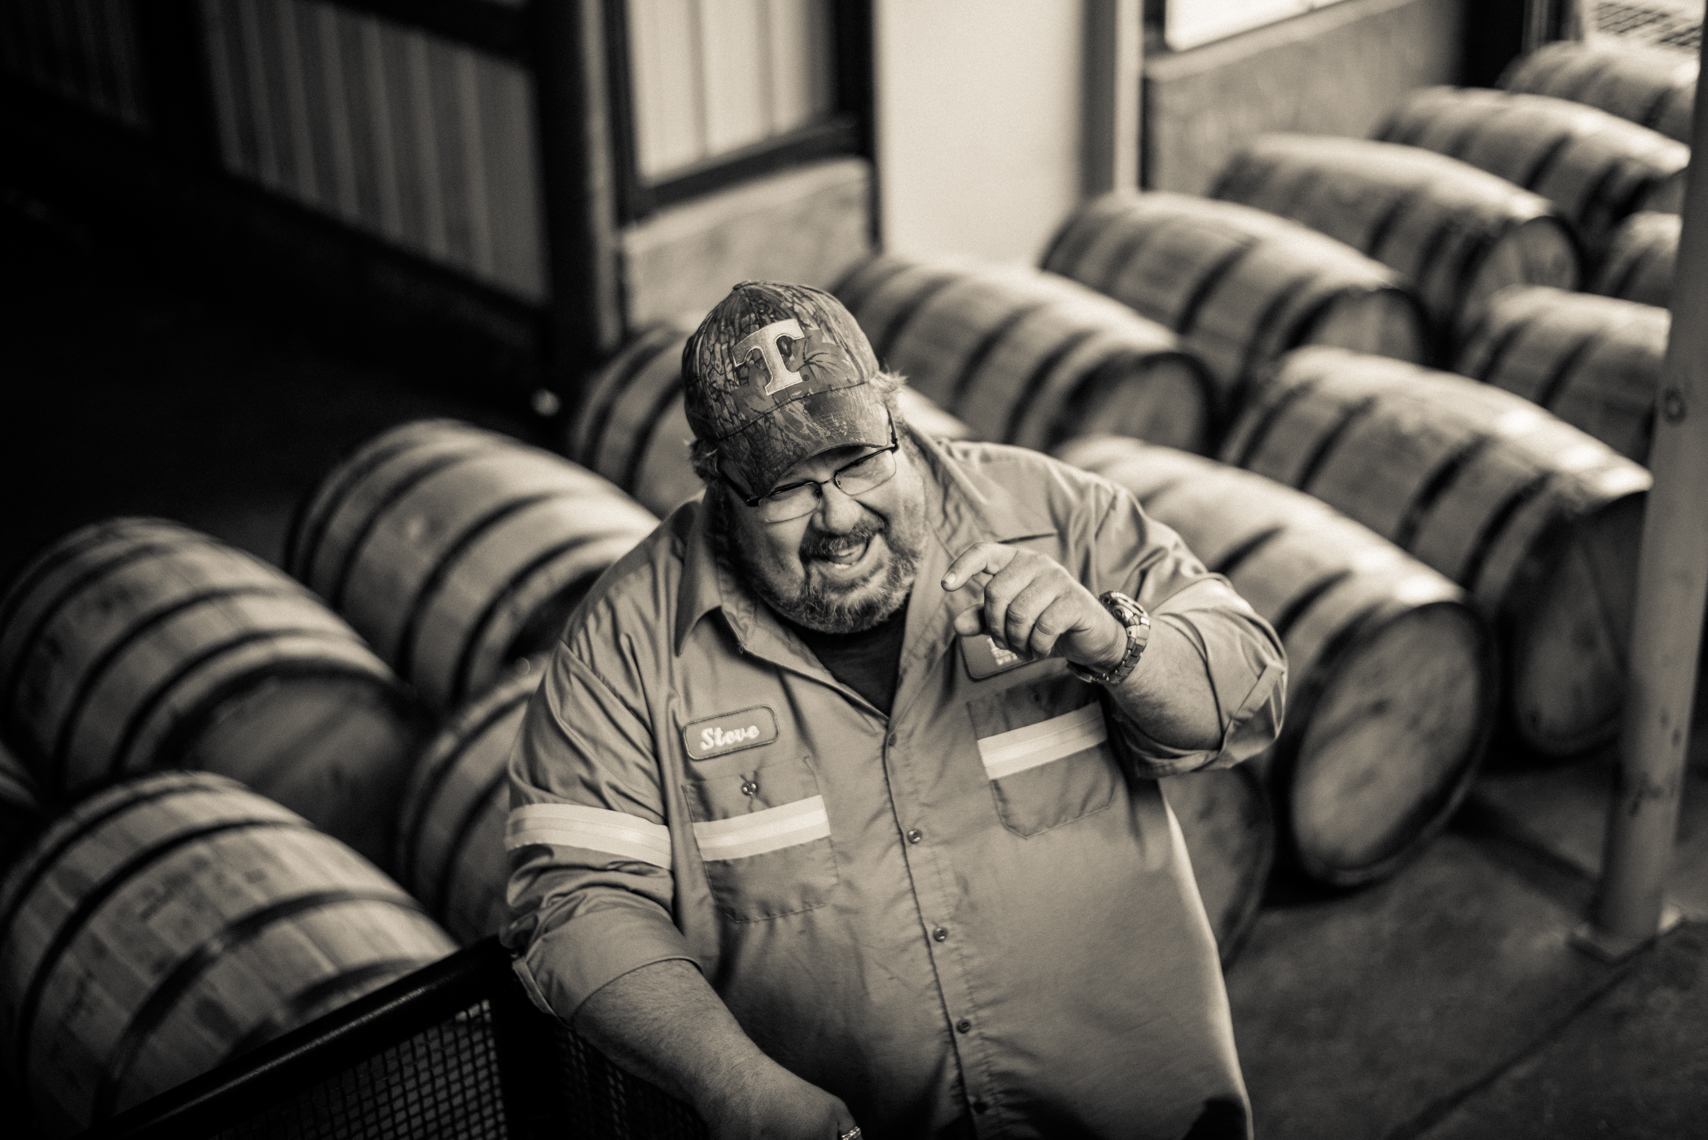 George Dickel Distillery - Tennessee Whiskey, barrels, laughing, worker, authentic, Nashville advertising photographer